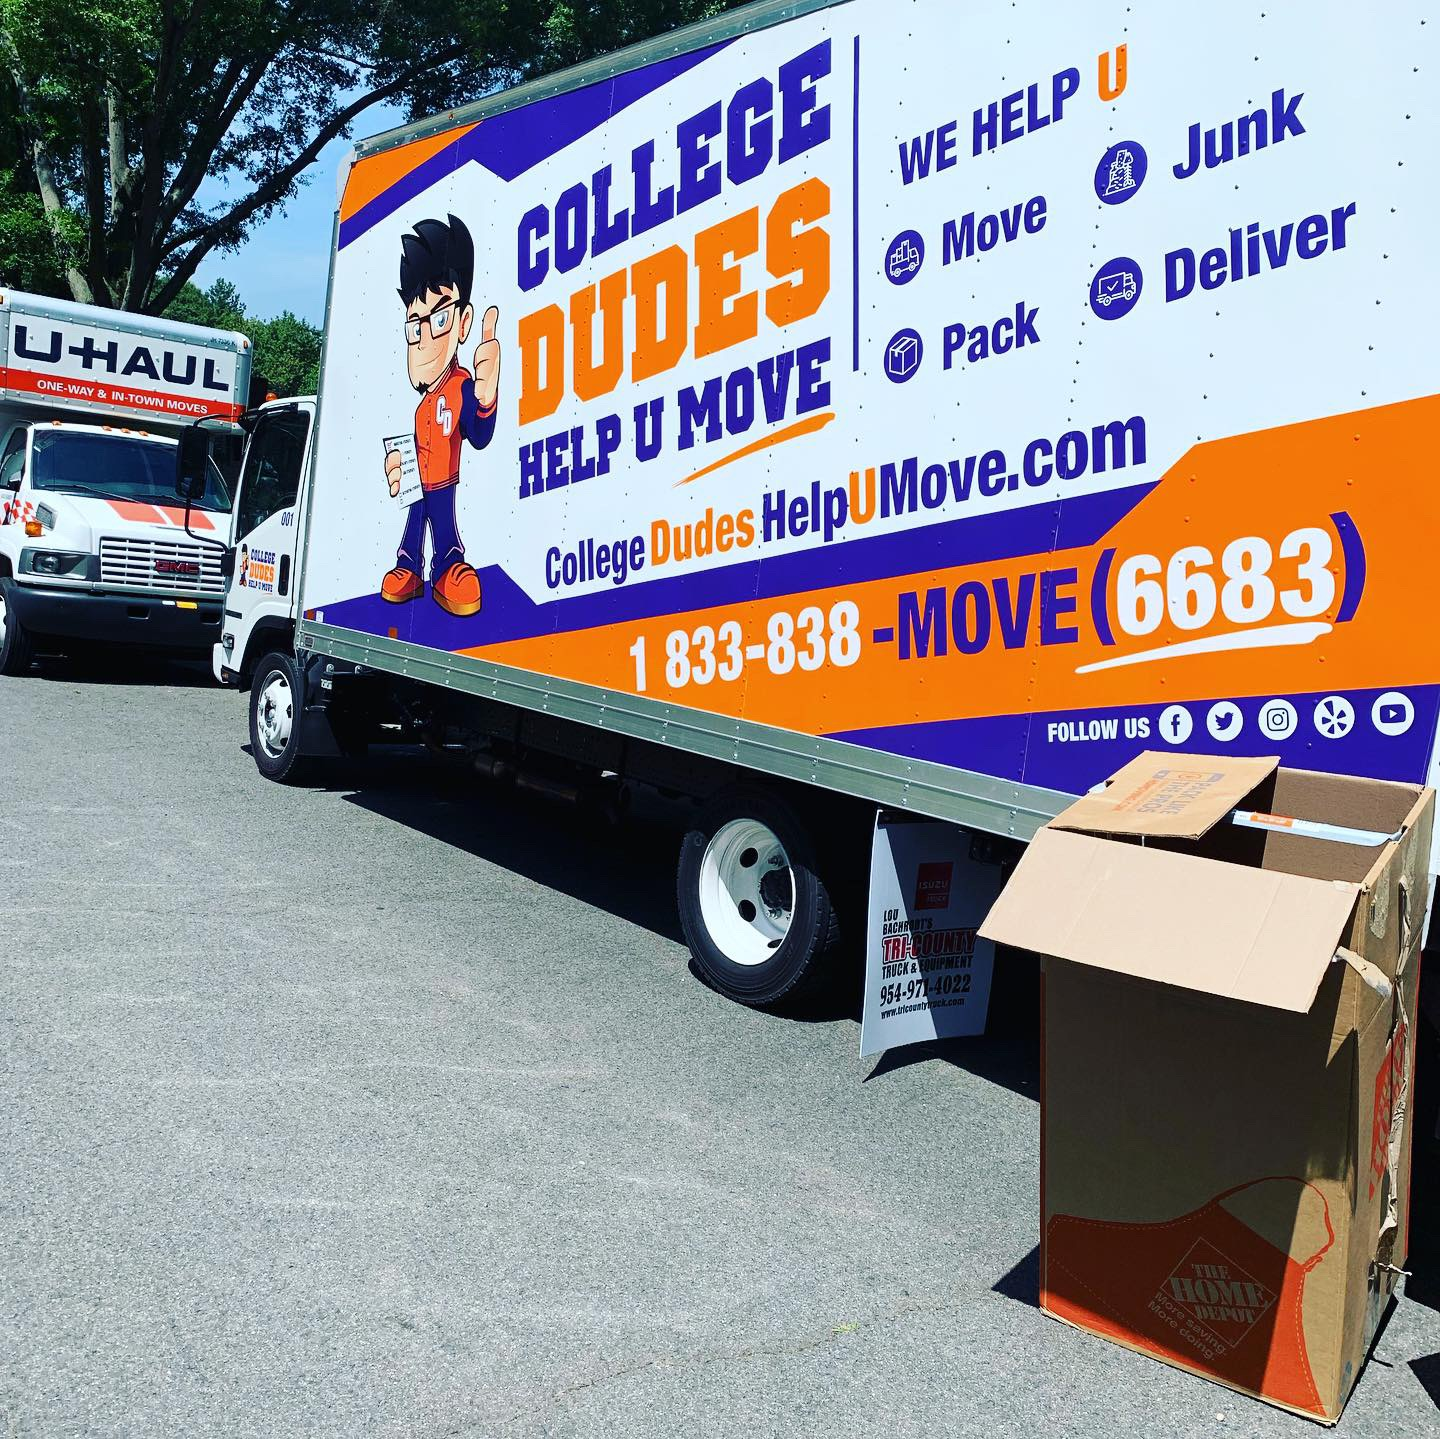 Best Movers: Learn How to Pick the Right Number of Movers and Factors that Influence Your Price